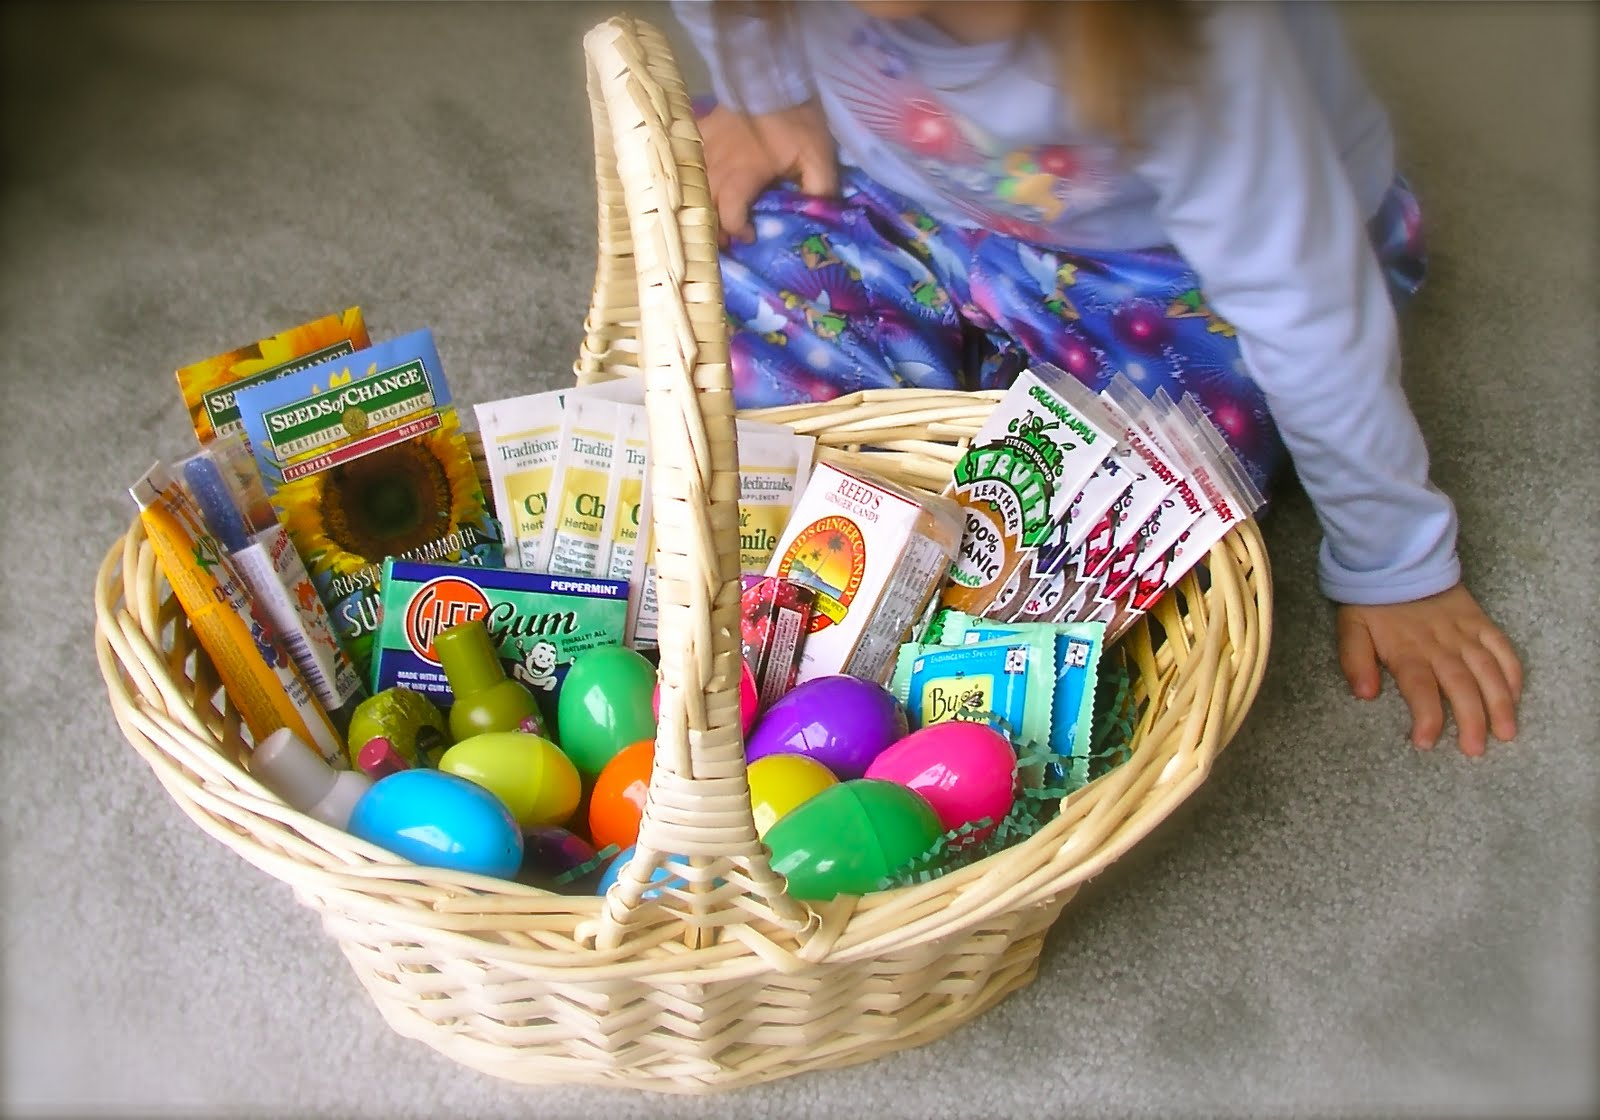 Nourishing meals healthy easter basket ideas healthy easter basket ideas negle Choice Image